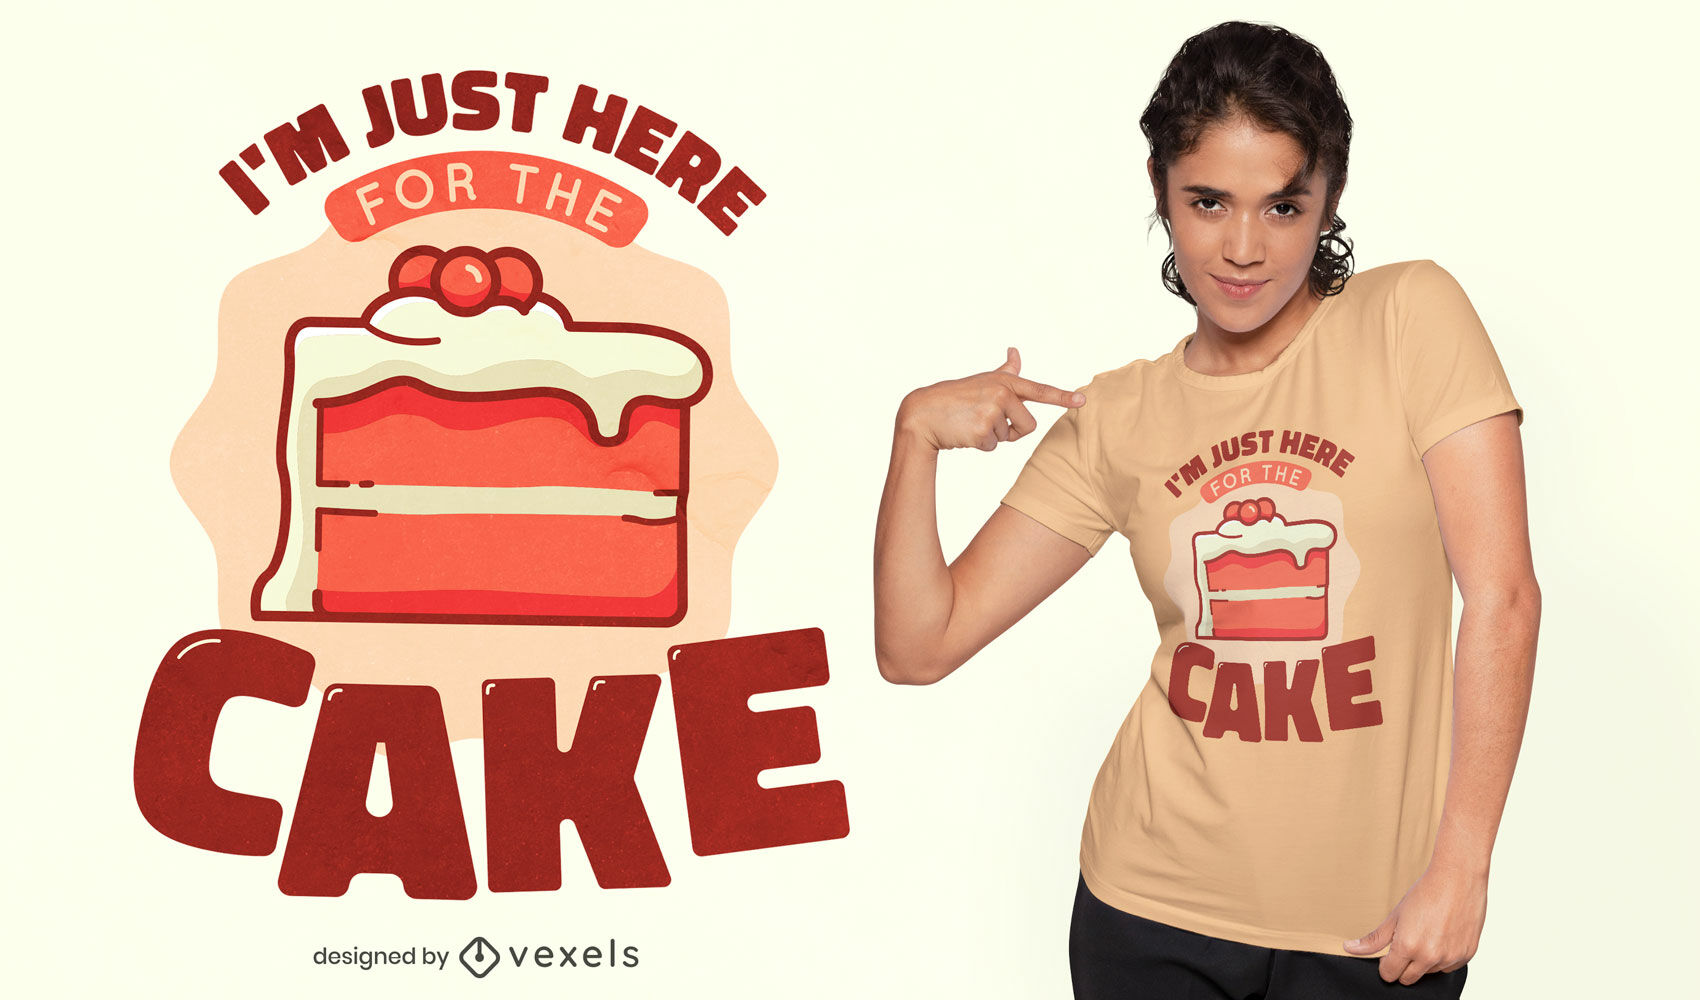 Here for the cake t-shirt design